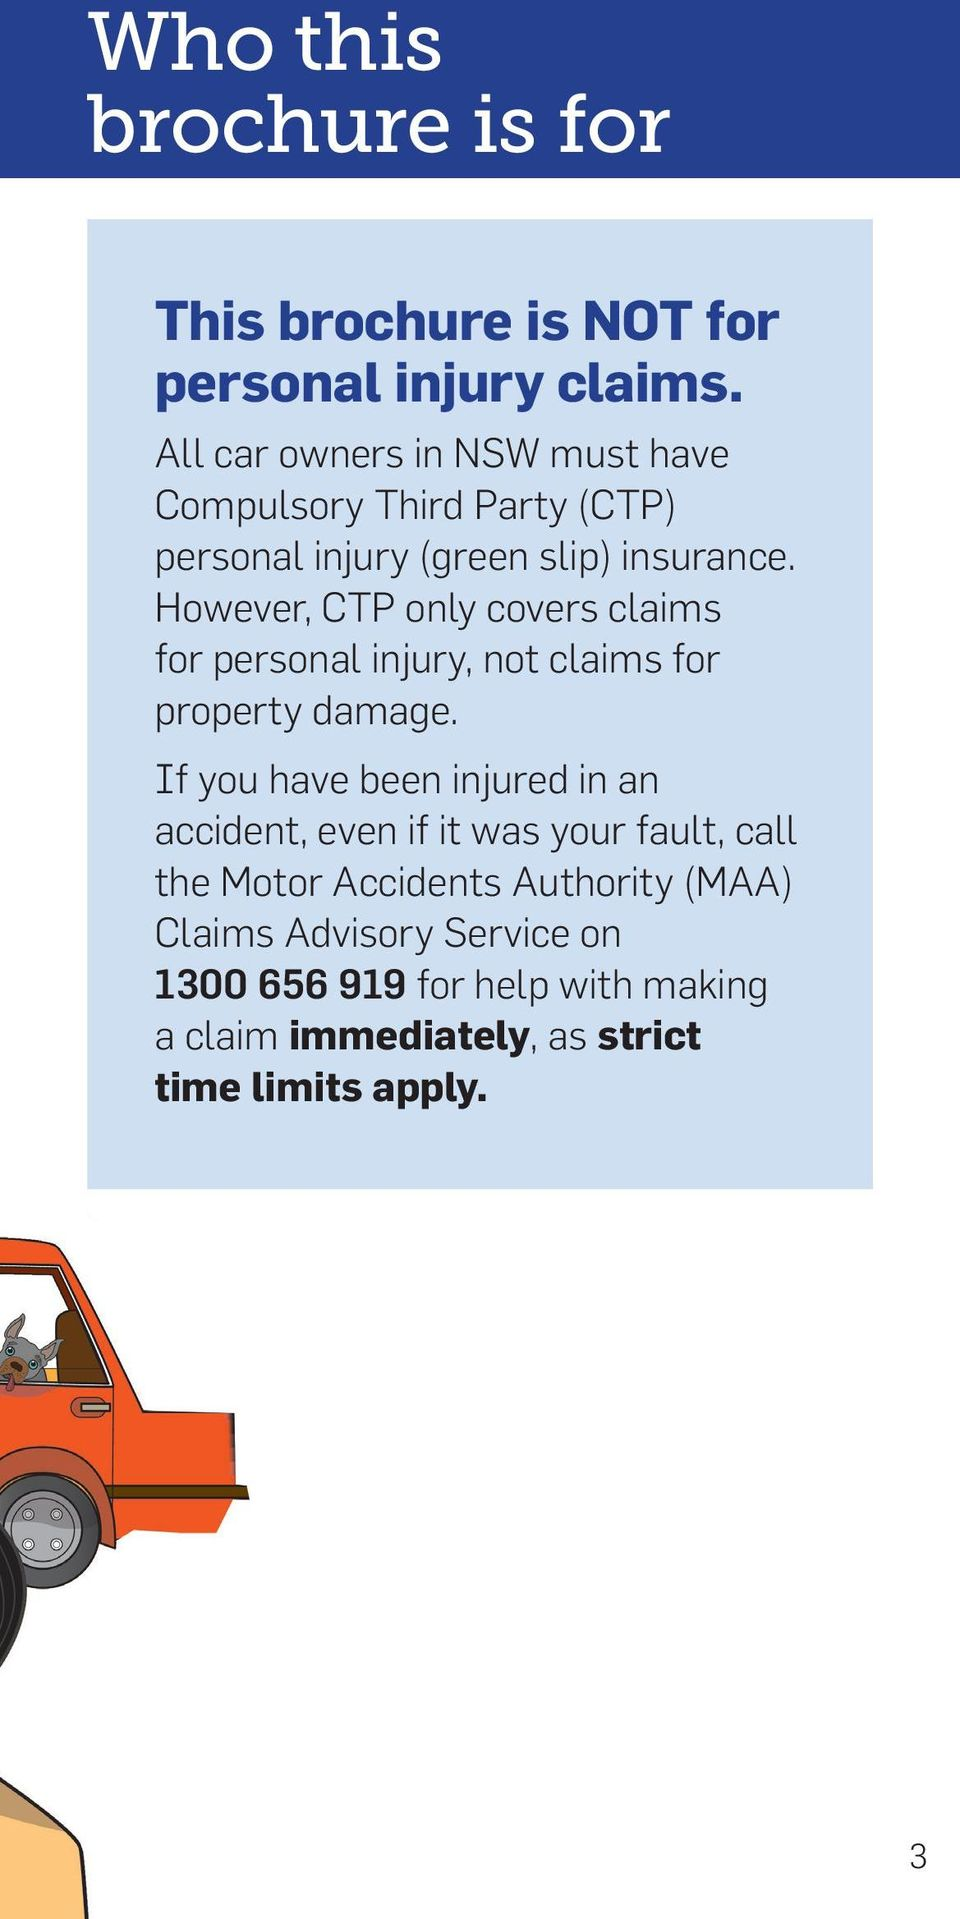 However, CTP only covers claims for personal injury, not claims for property damage.